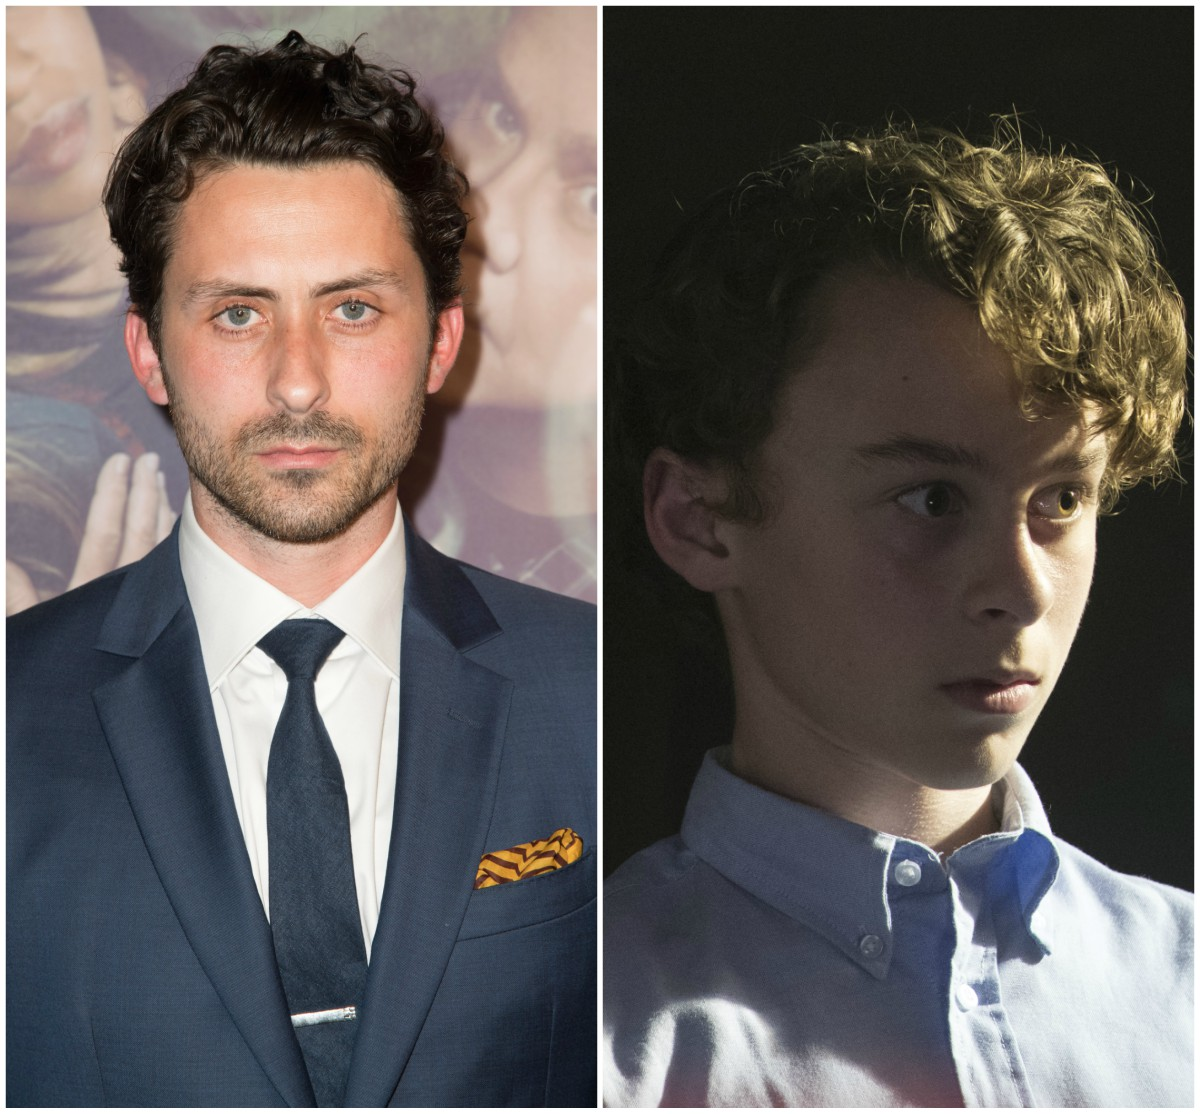 Andy Bean as Stanley Uris